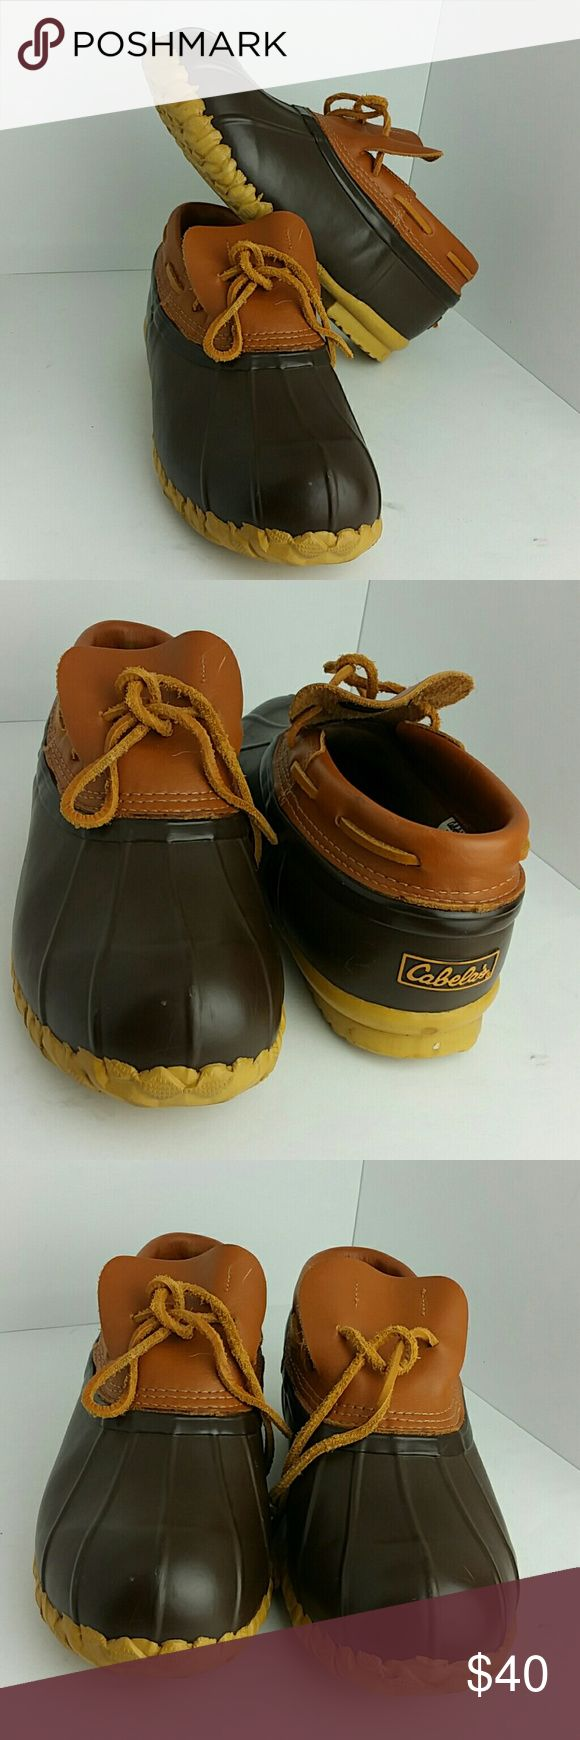 CABELAS MENS DUCK BOOT VERY CLEAN INSIDE-OUT   SKE # KF cabelas Shoes Boots